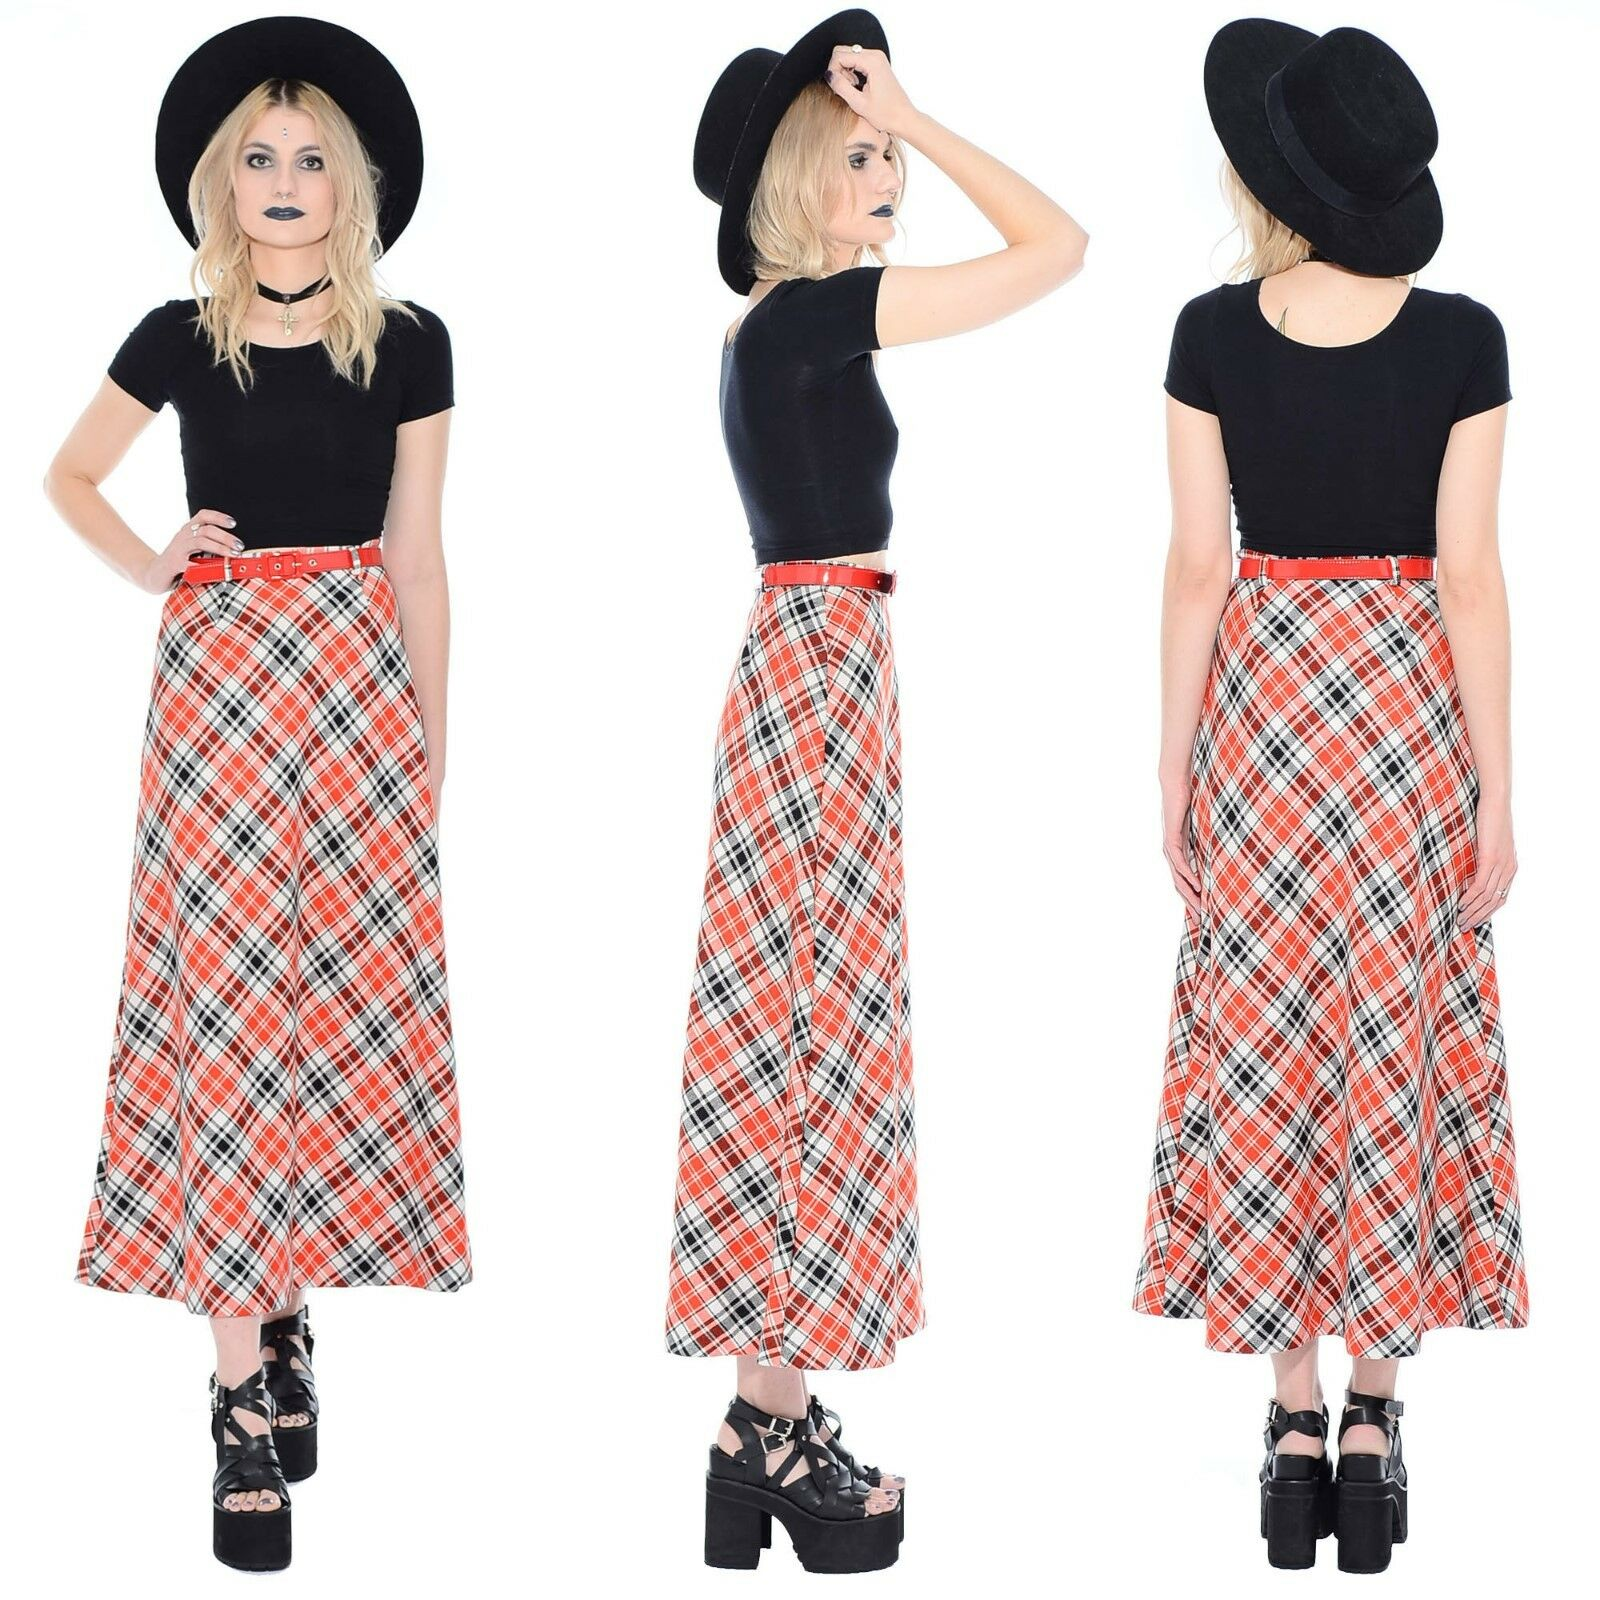 Vintage 70s PLAID High-Waist Maxi Dress Skirt Grunge Mod Boho Hippie A-Line